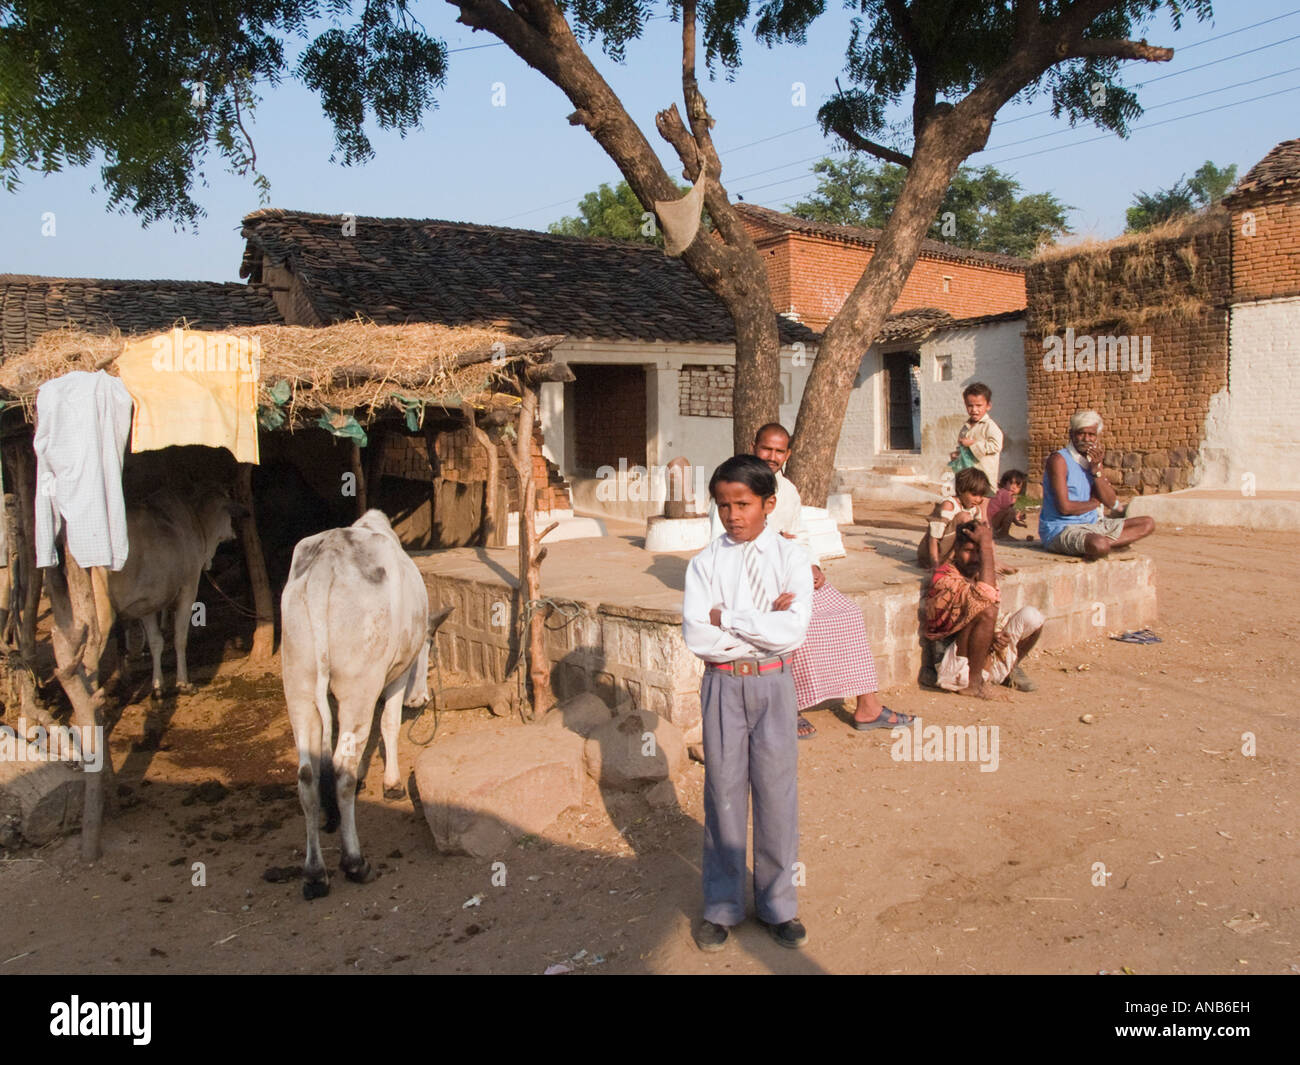 People with young boy standing in front outside typical for South indian home images